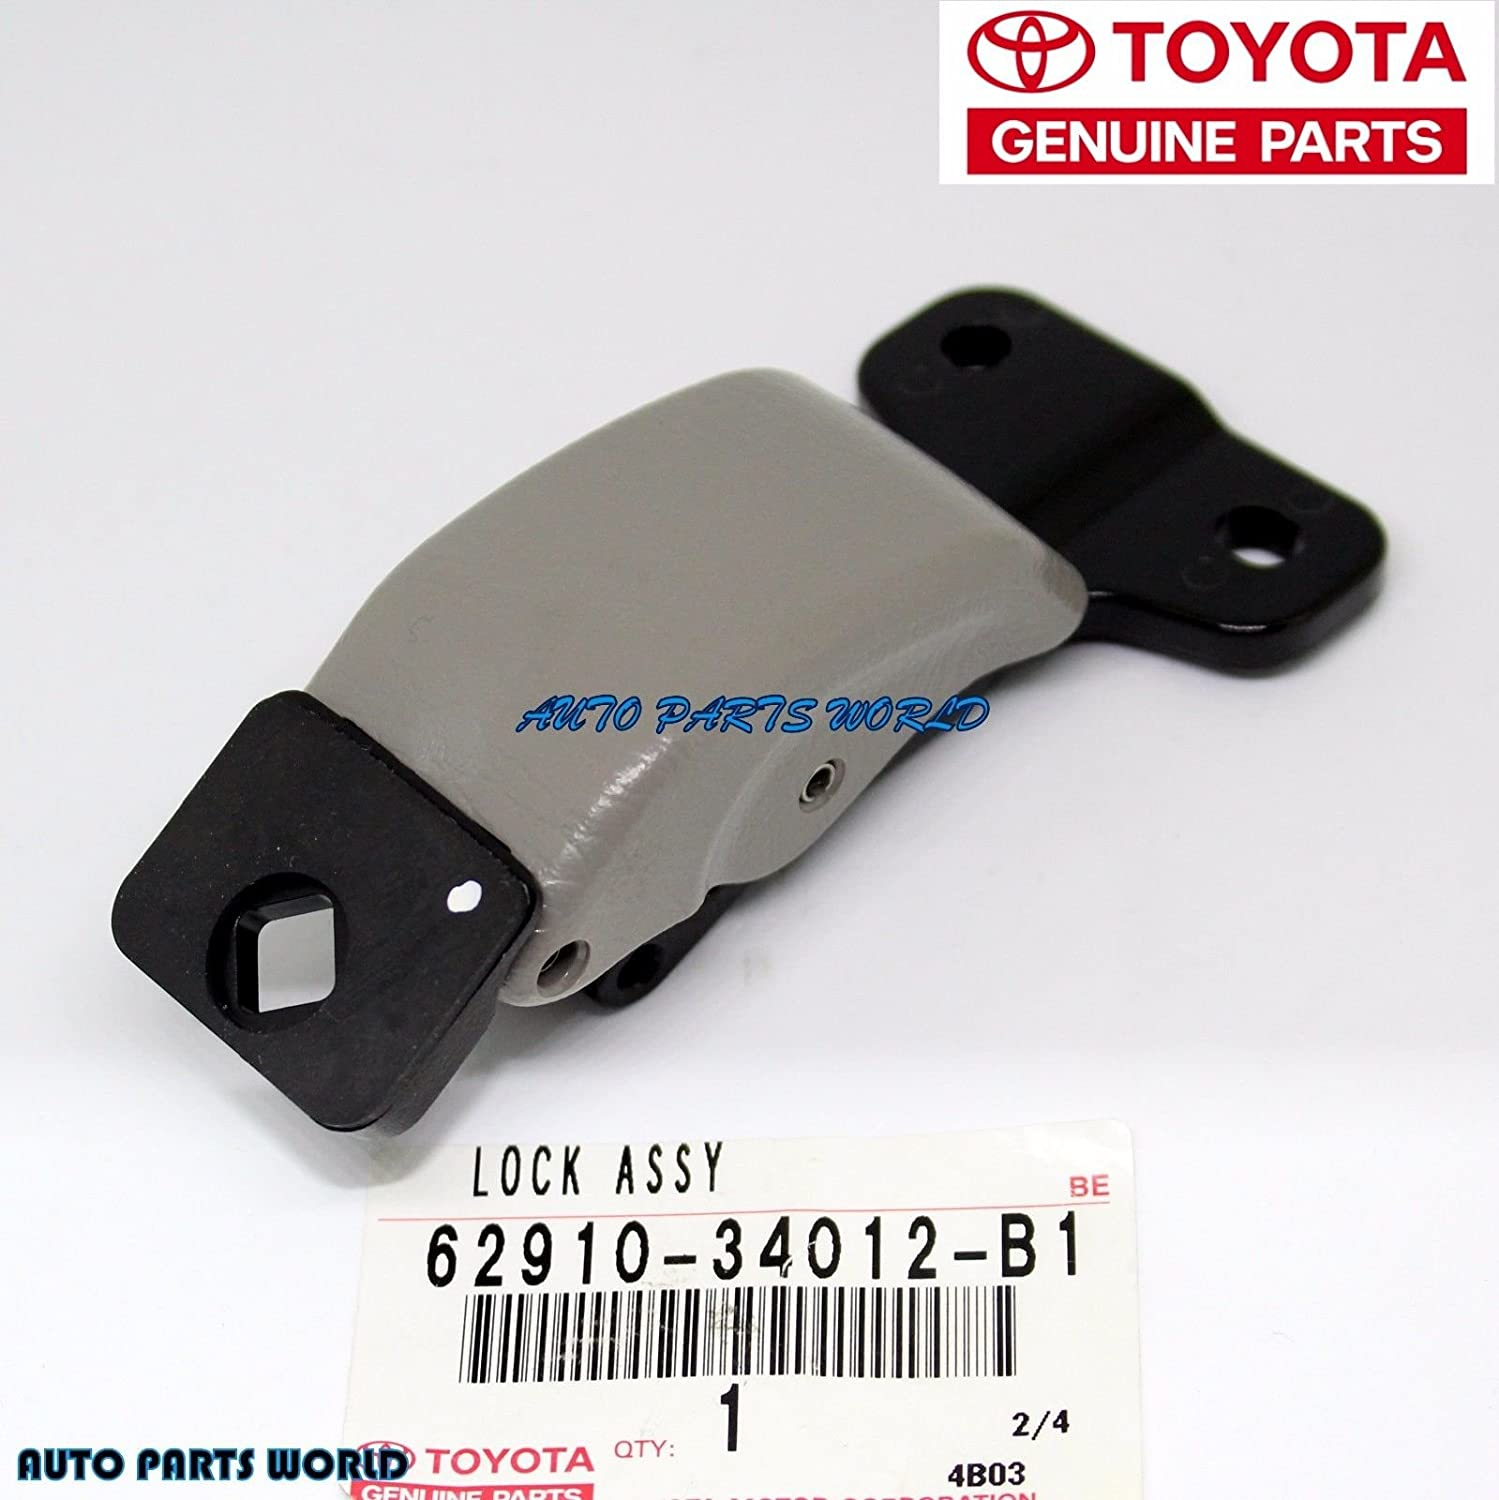 Toyota 62910-34012-B1 Quarter Window Lock Assembly